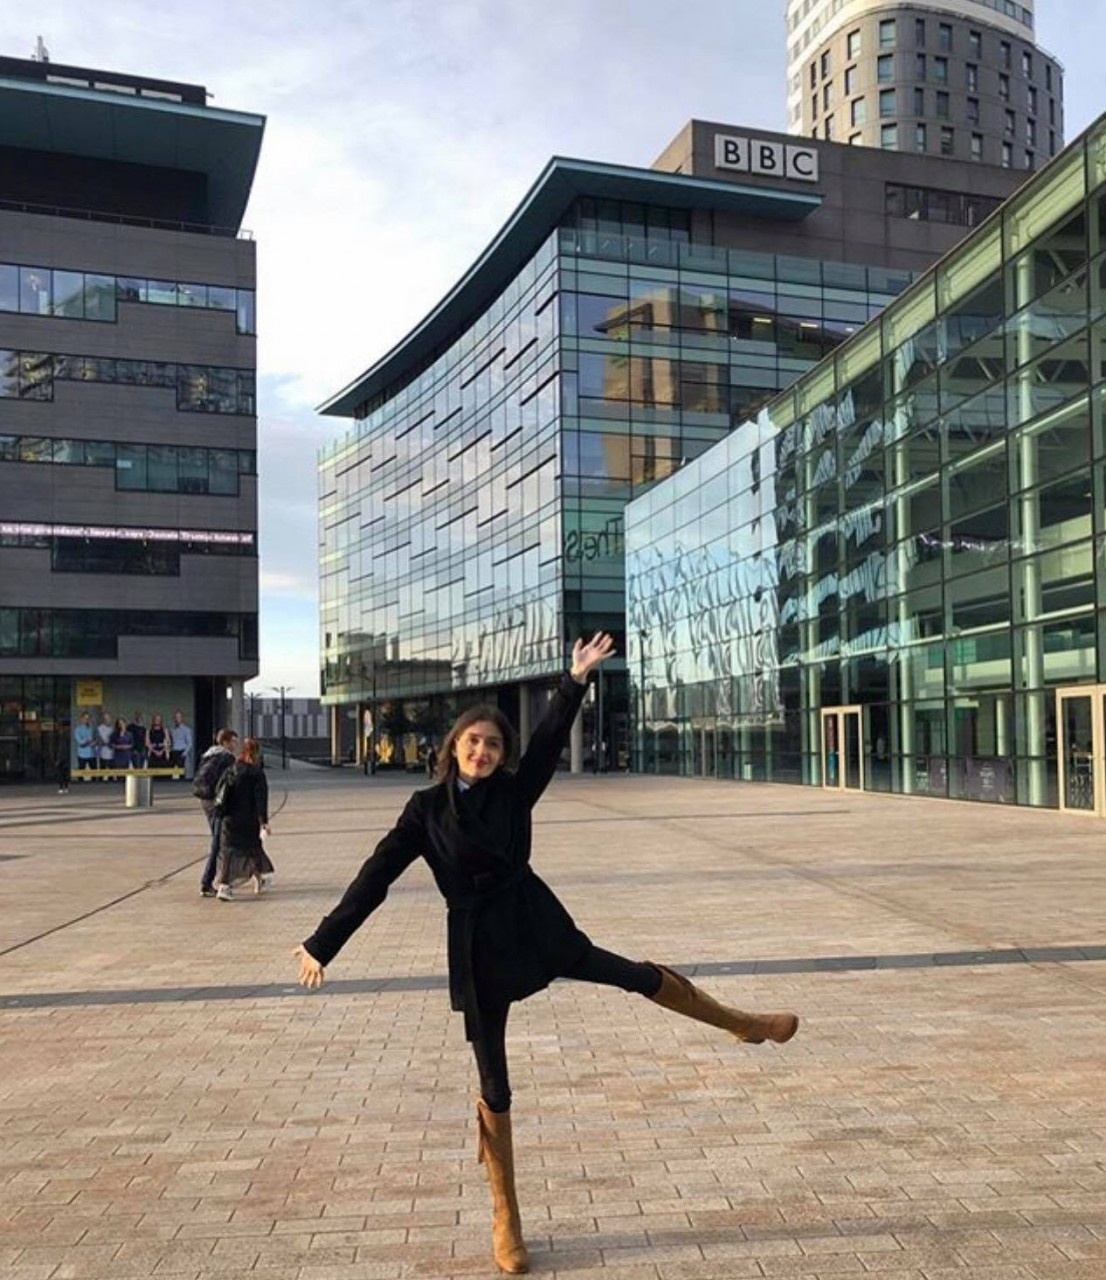 From the BBC Media City to Arena UK